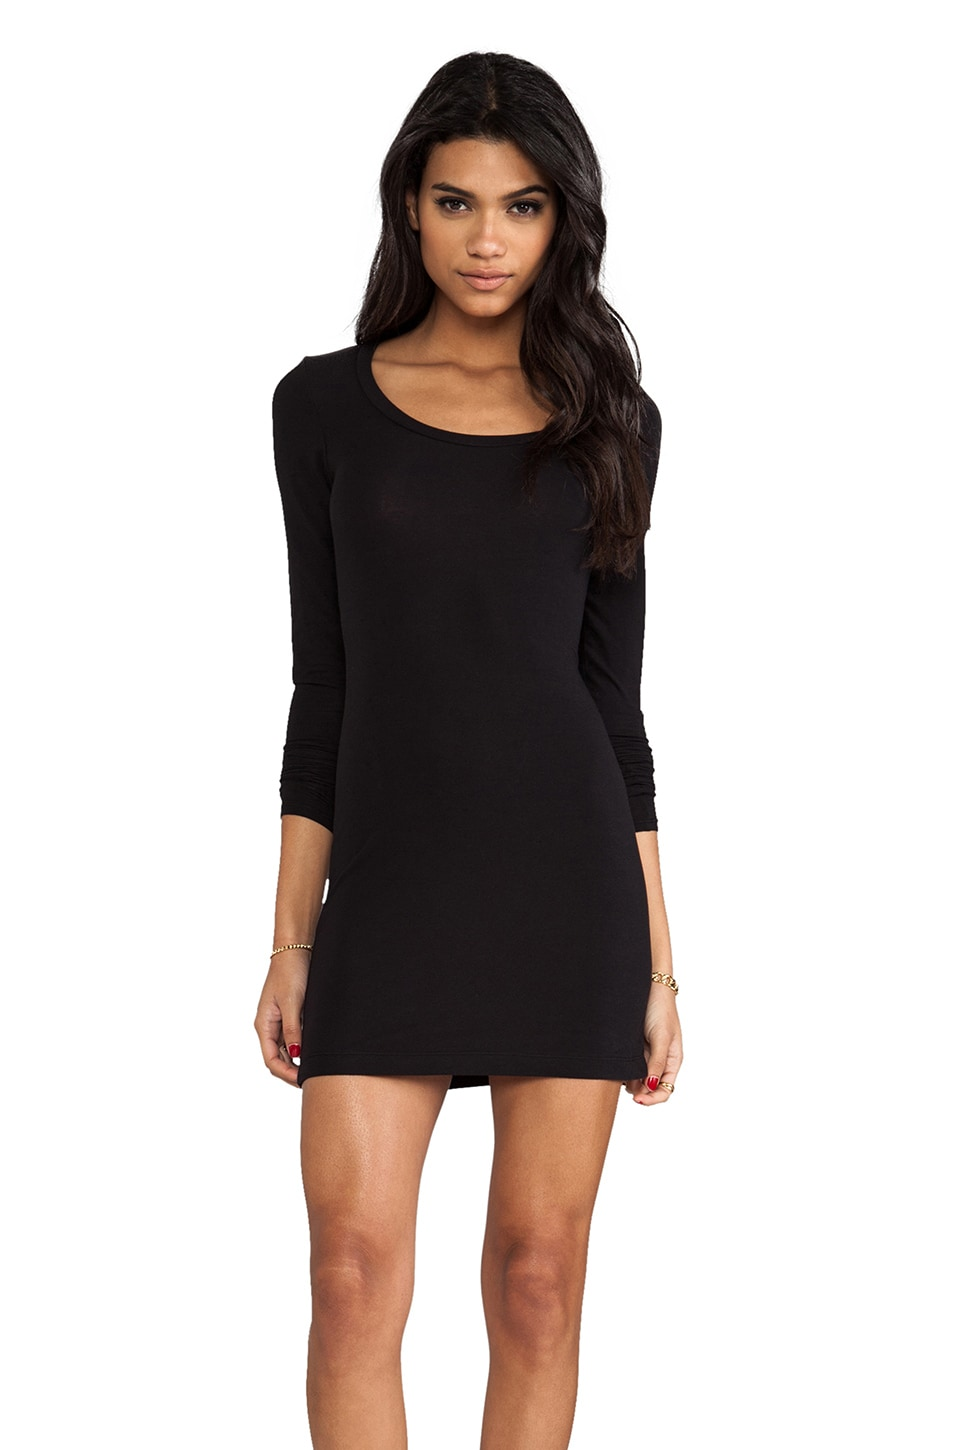 Splendid Layers Long Sleeve Tee in Black